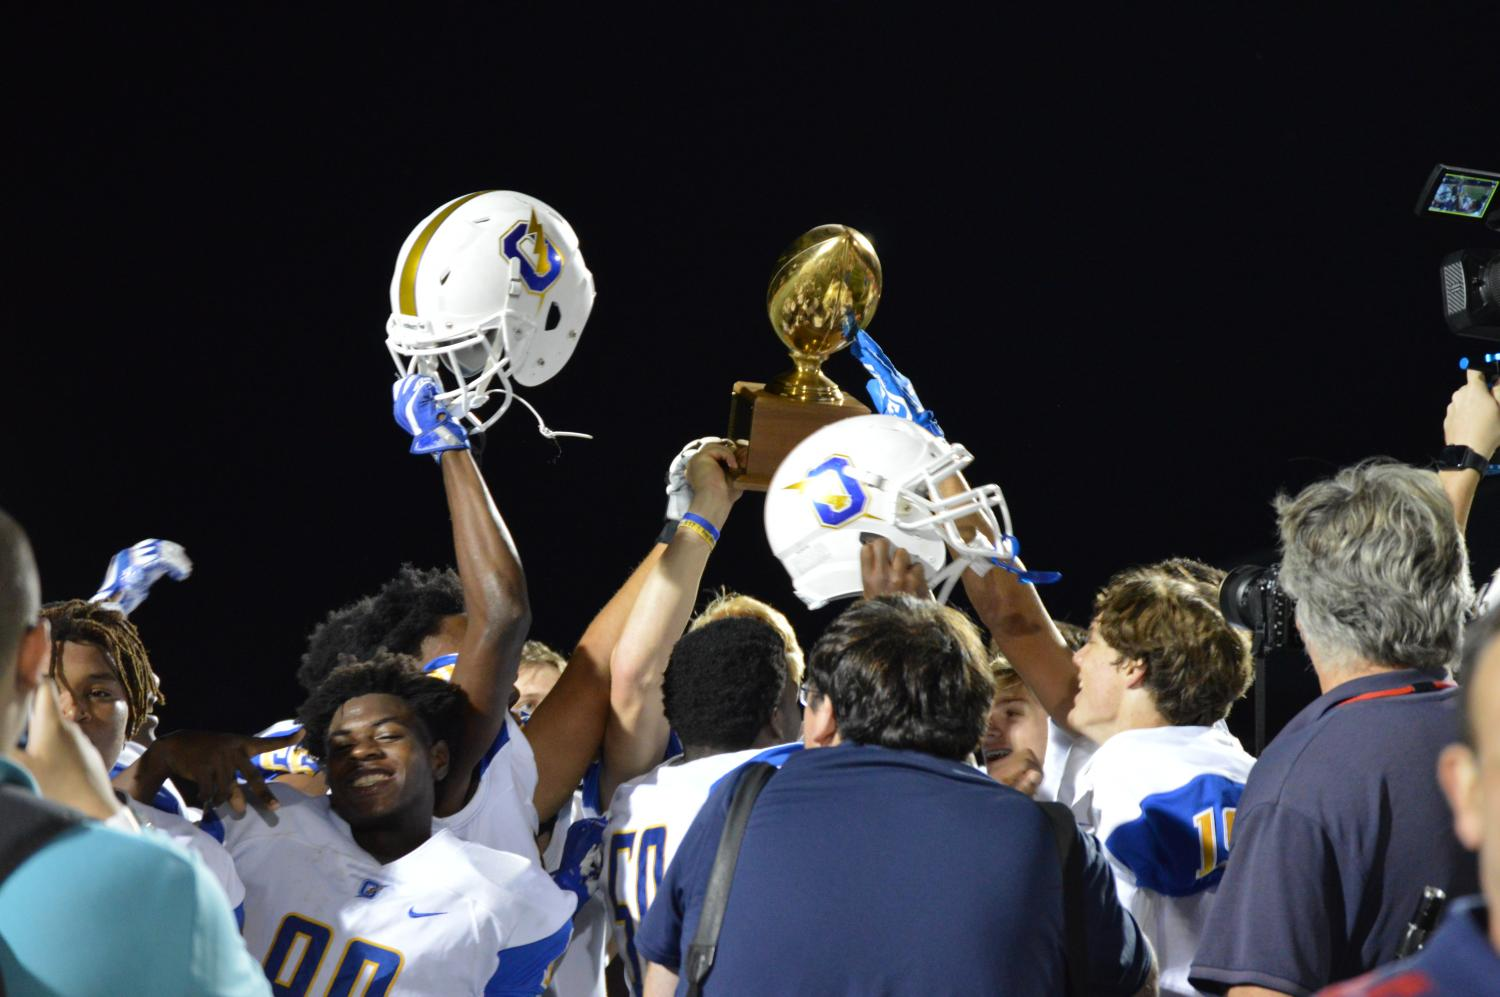 The Chargers hoist the Crosstown Classic Trophy following the Oxford's 41-17 win over Lafayette.